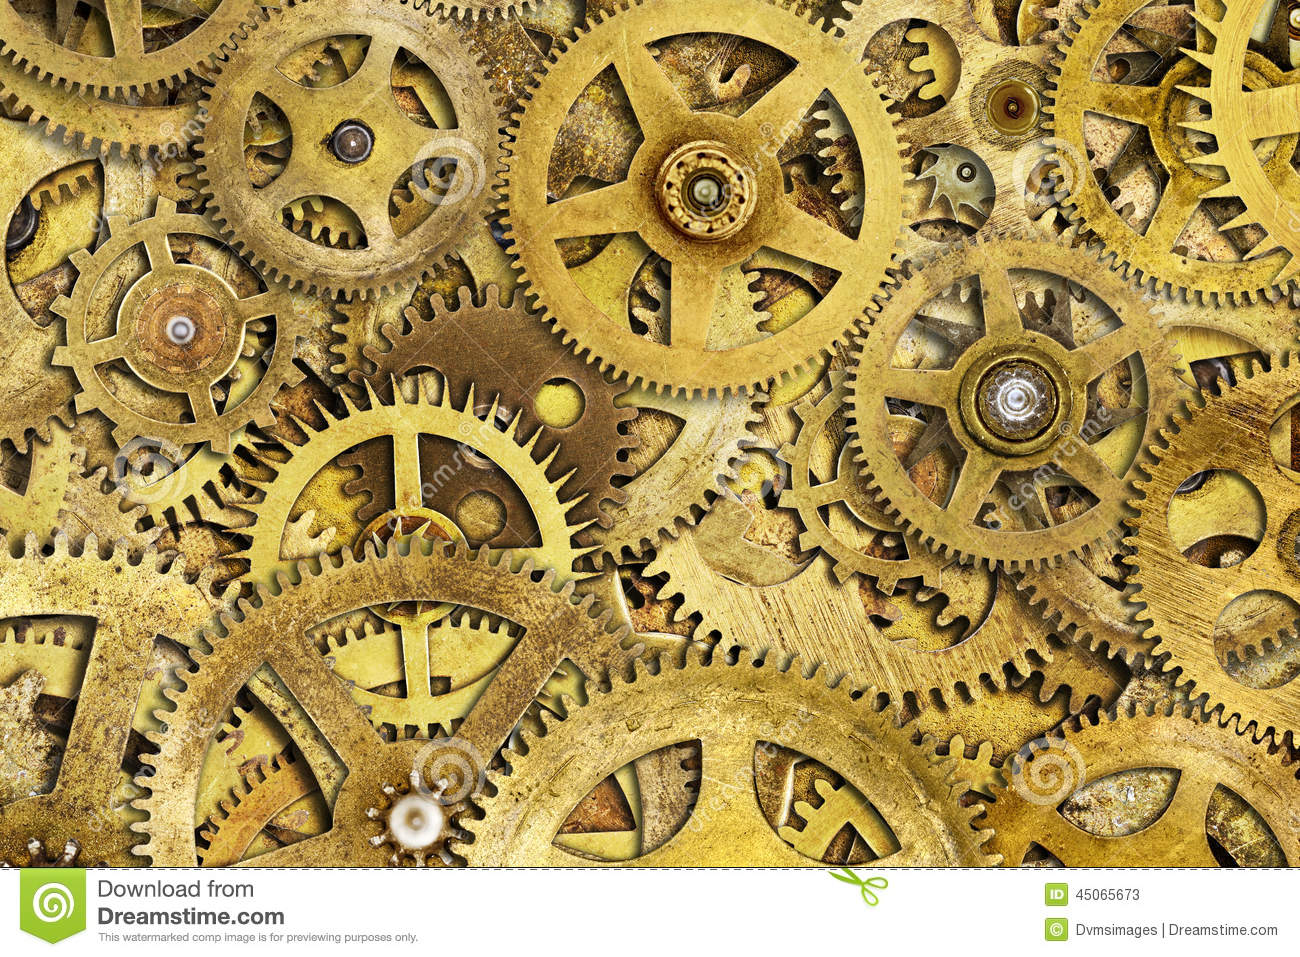 Cogs Machine Stock Photo - Image: 45065673